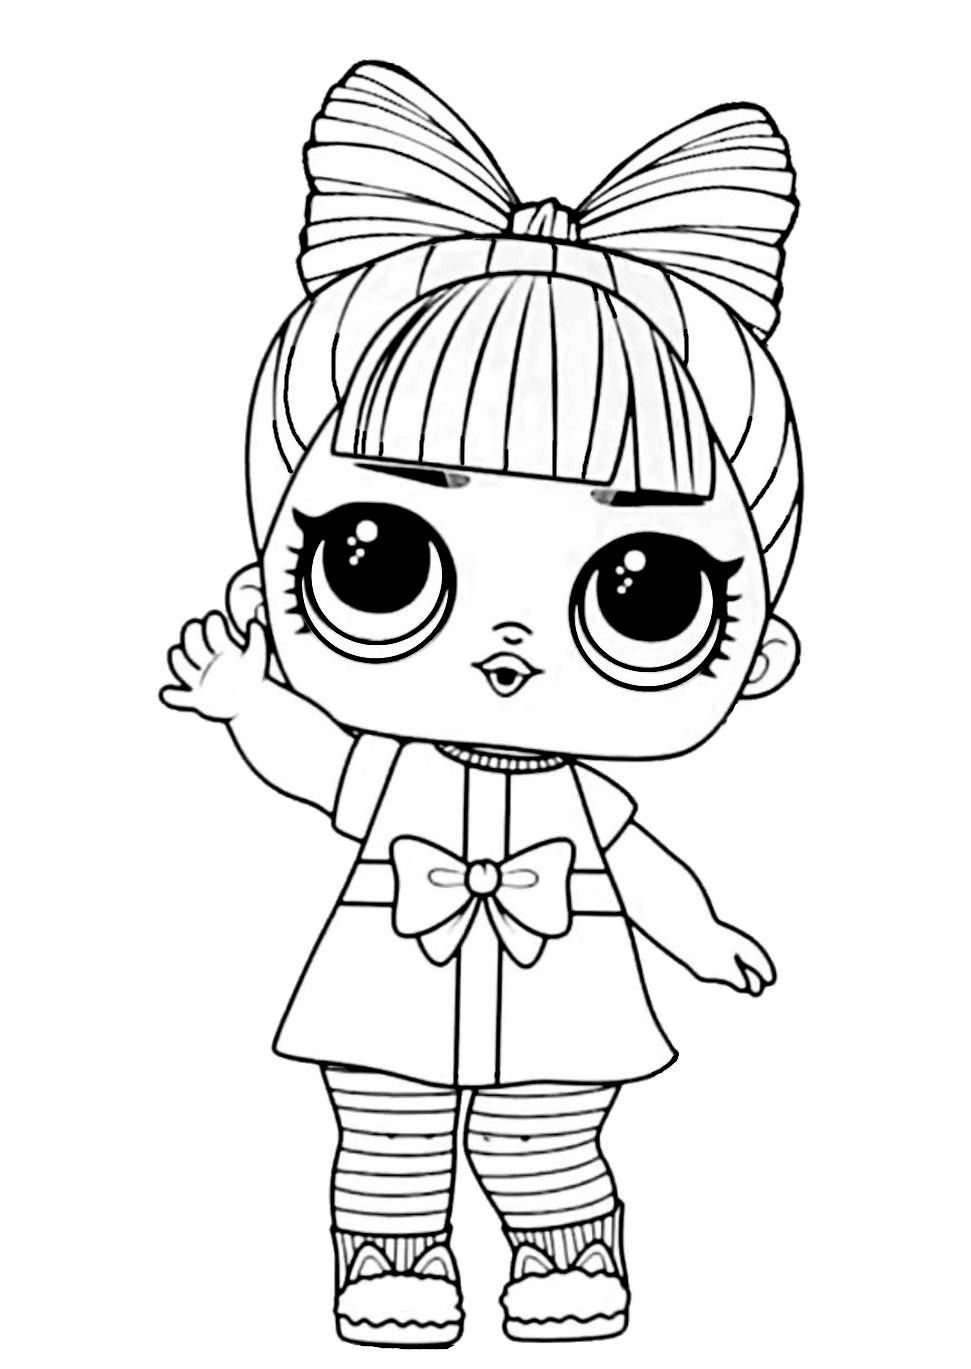 Lol Surprise Winter Disco Coloring Prezzie In 2020 Baby Coloring Pages Cartoon Coloring Pages Cute Coloring Pages